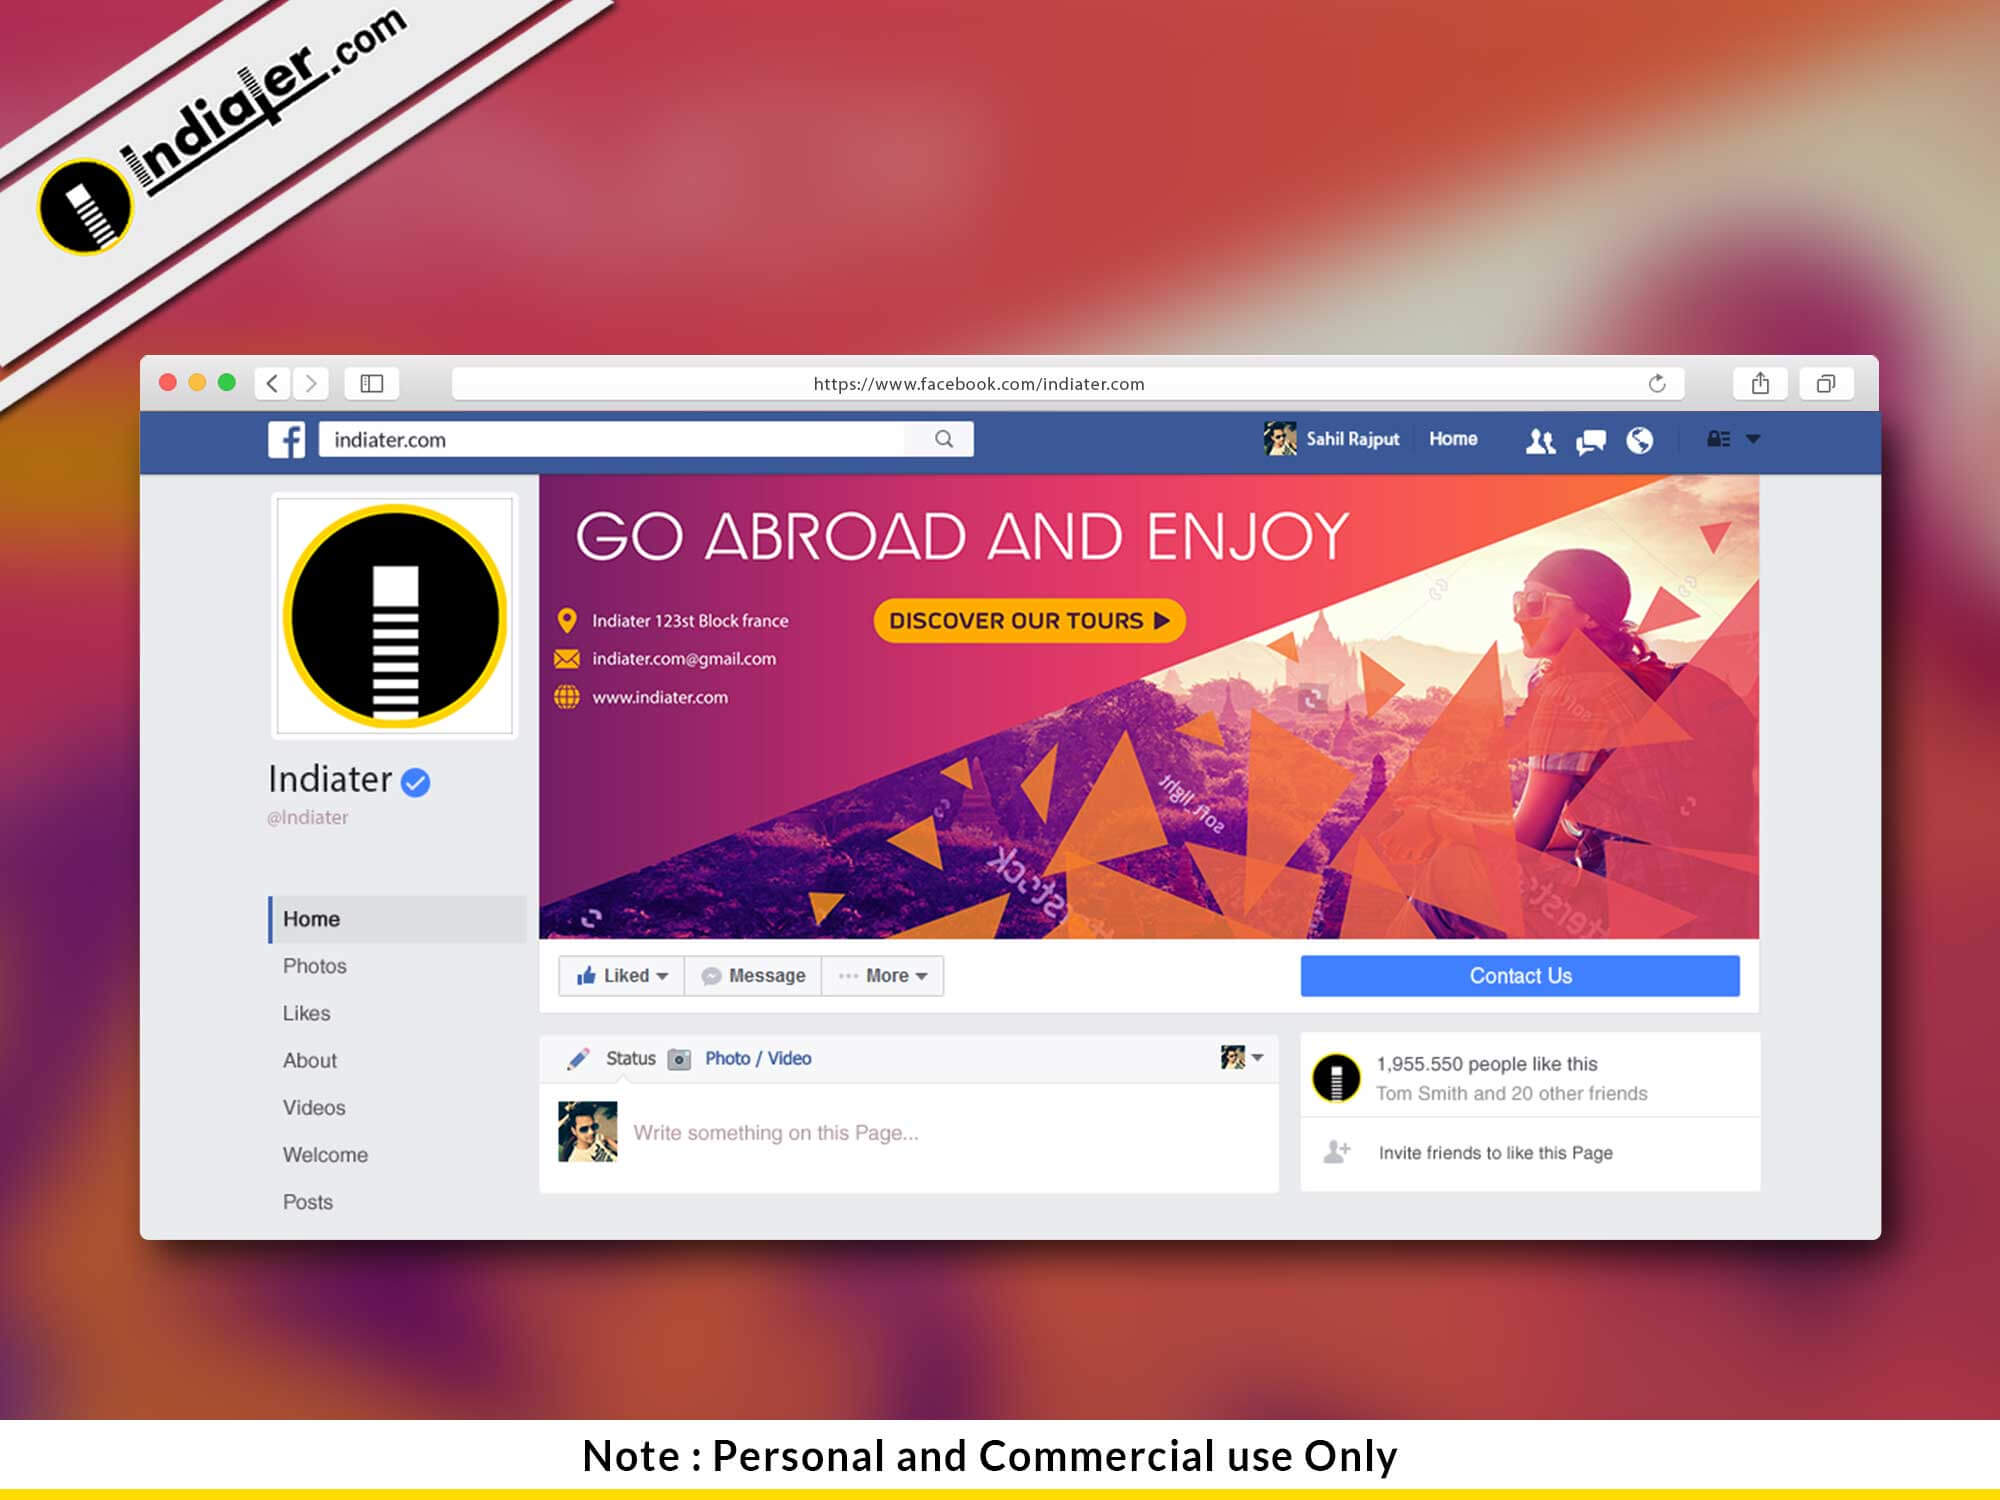 002 Free Travel Facebook Cover Psd Template Photoshop Regarding Photoshop Facebook Banner Template